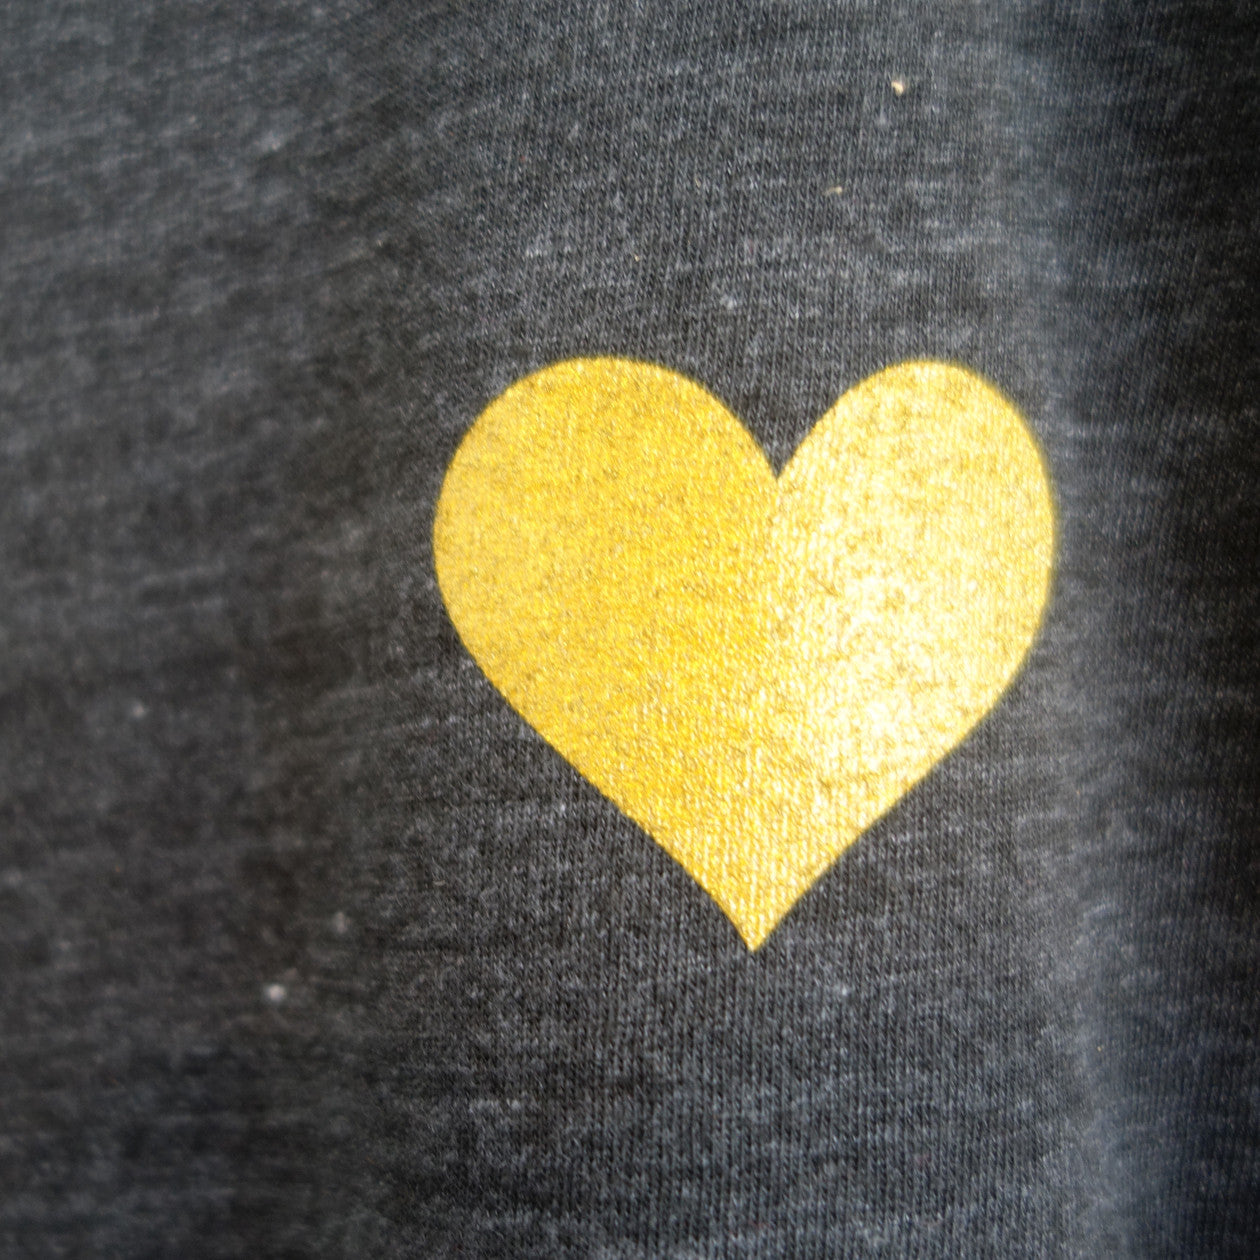 Detailed photo of the printed gold heart.